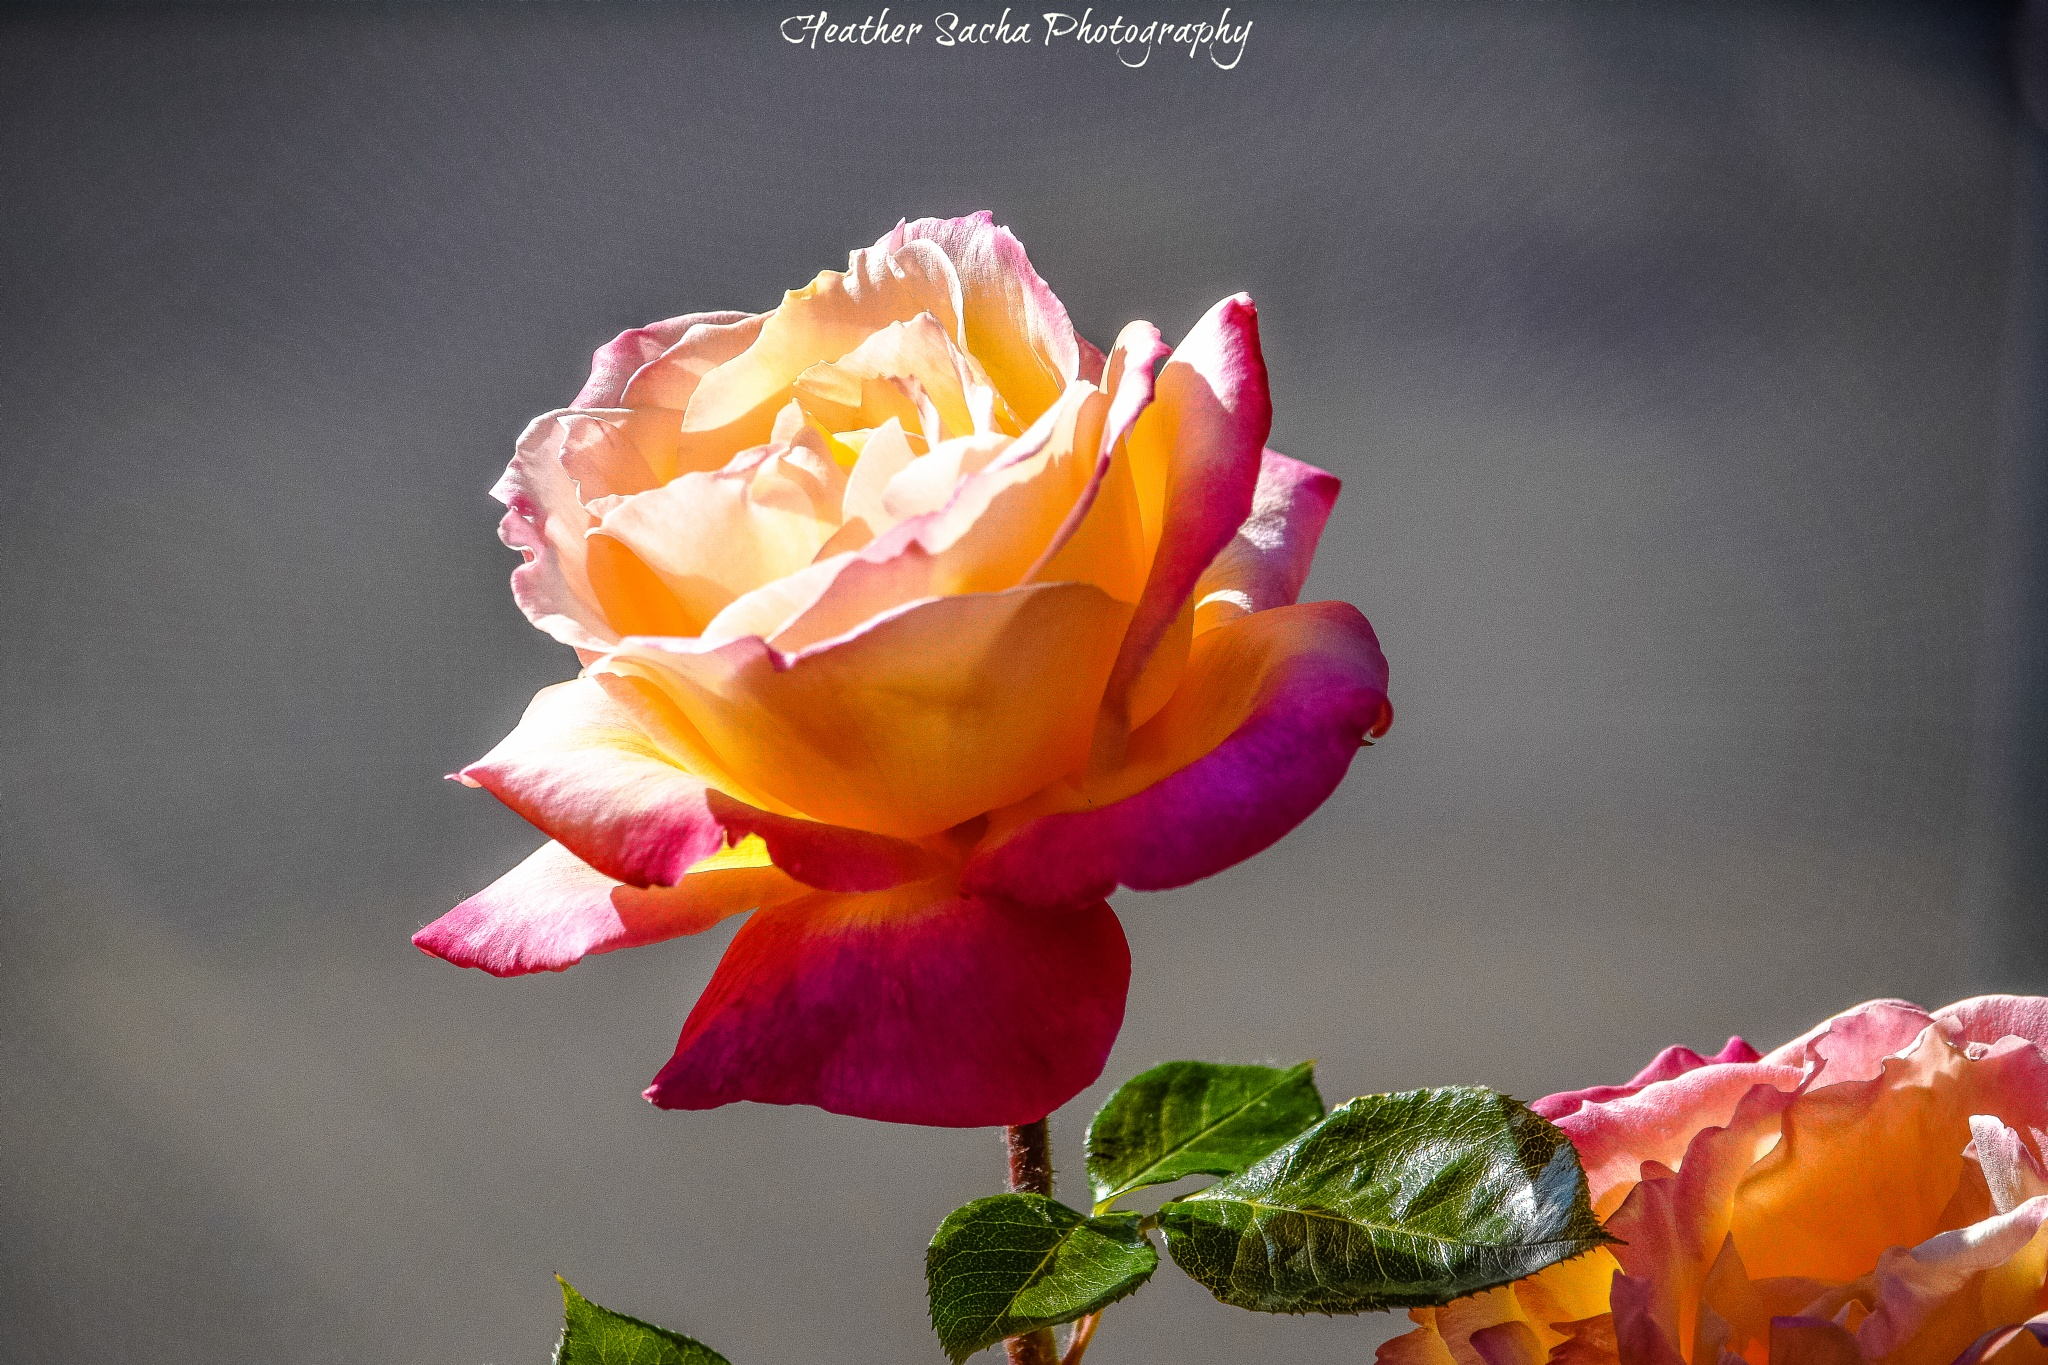 Pink and Yellow Rose by heather.sacha